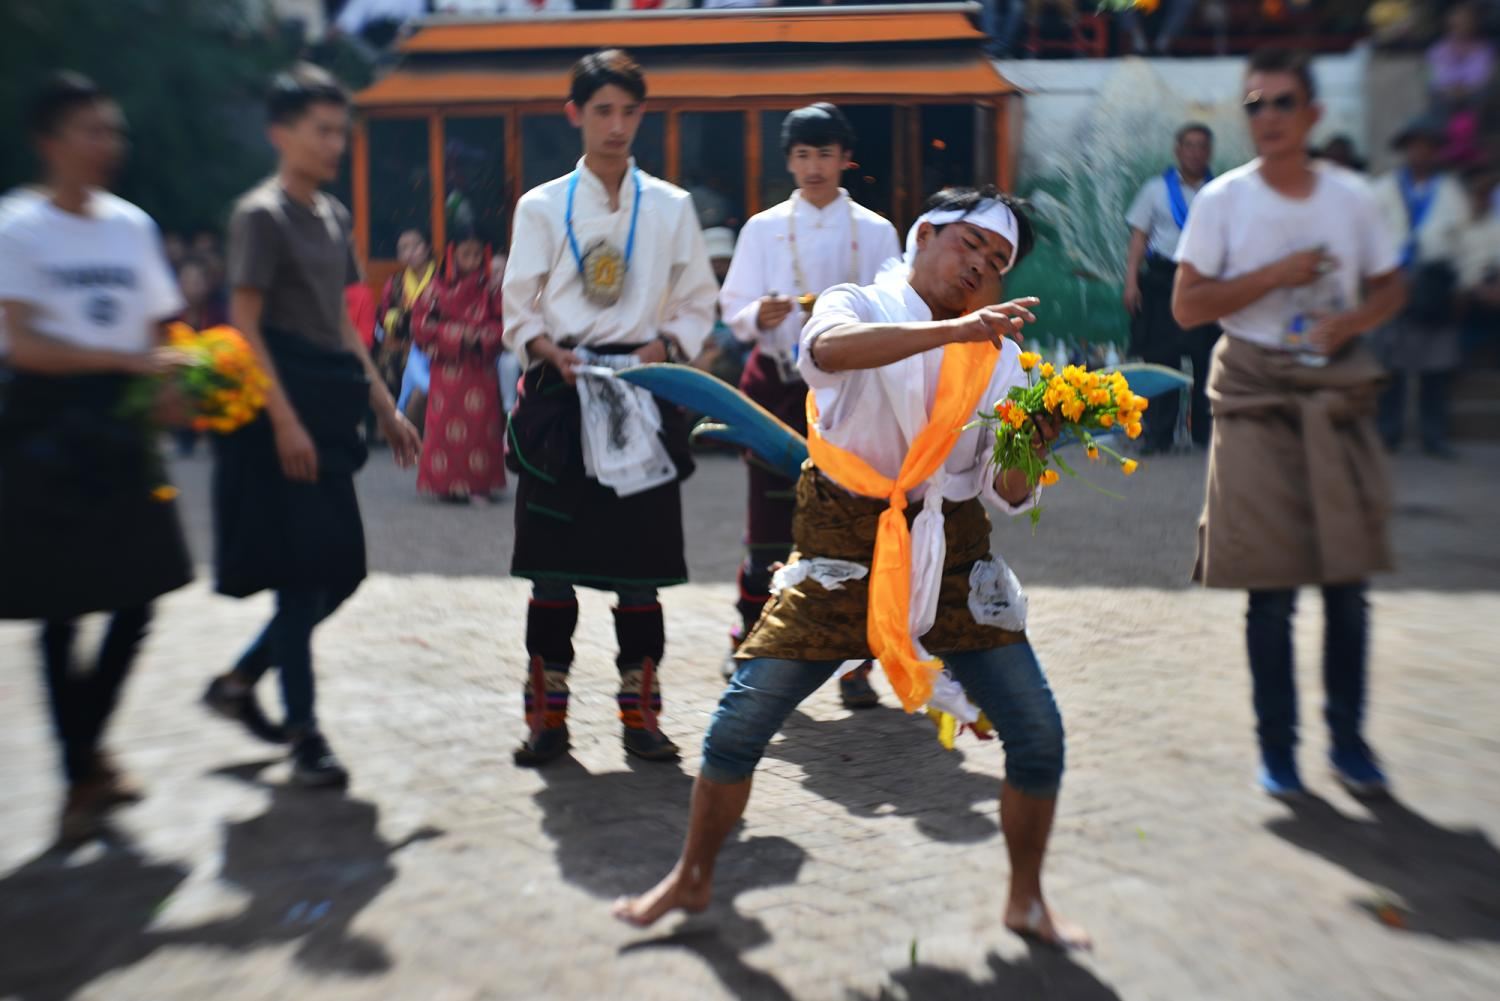 The  Anye Makhon (A mye dmag dpon ཨ་མྱེ་དམག་དཔོན) dance returned to Sadjye in 2017 after a decade plus absence due to the passing of the former dancer. It includes sword play and the kinetic tossing of burning paper, grain, and alcohol.